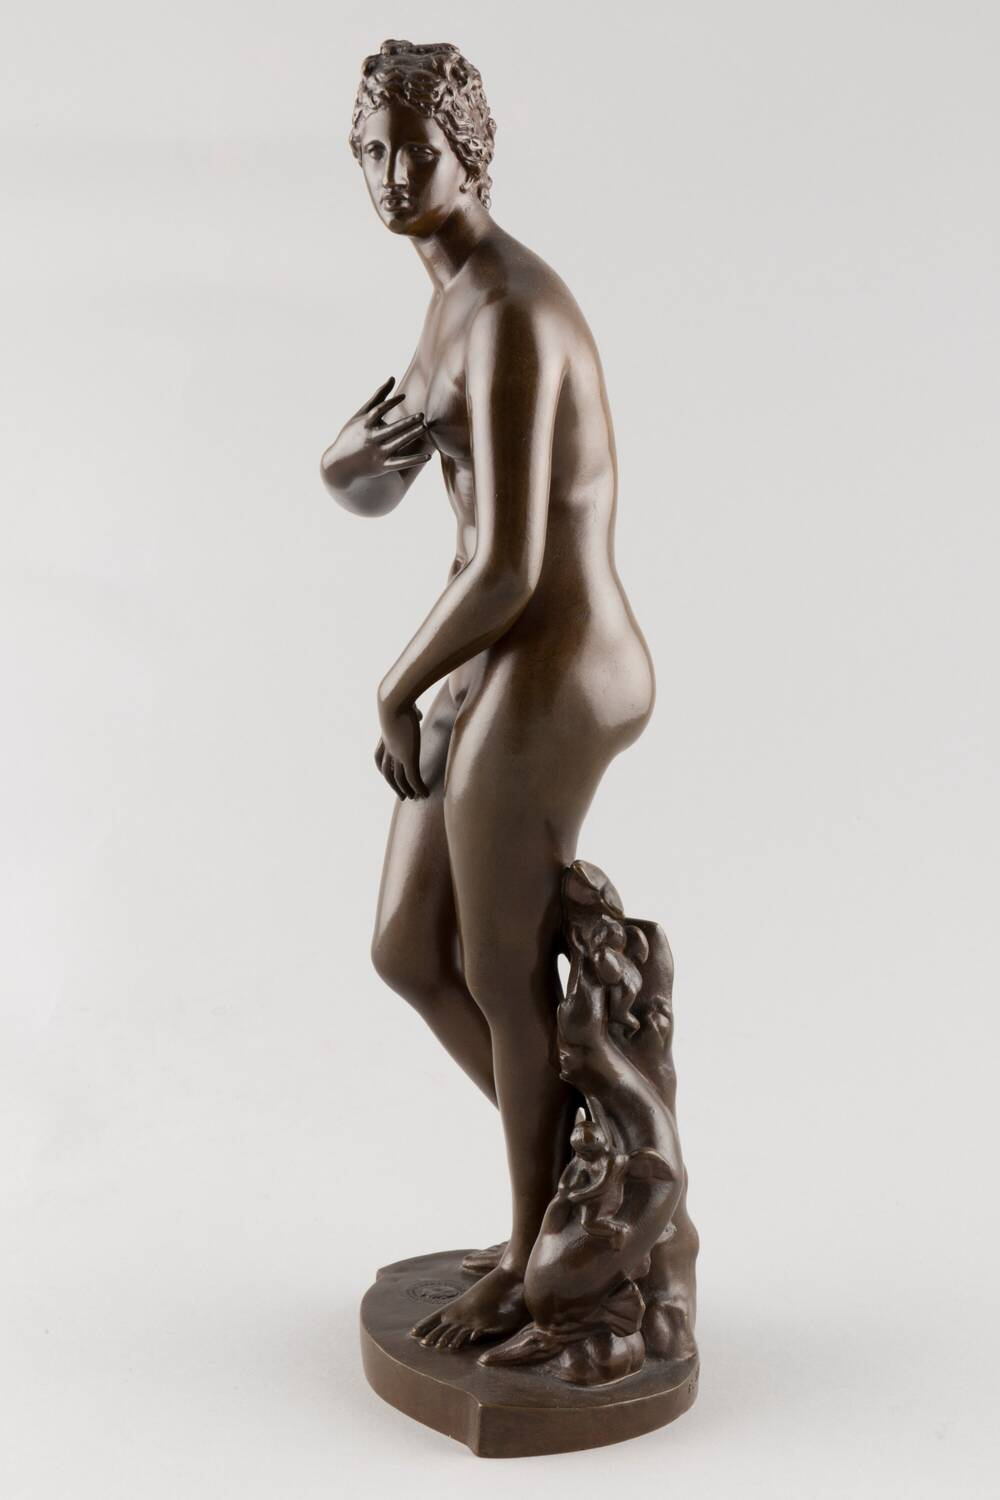 Side view of a bronze statue of Venus, with her right hand covering her left breast and her left hand on her right thigh.